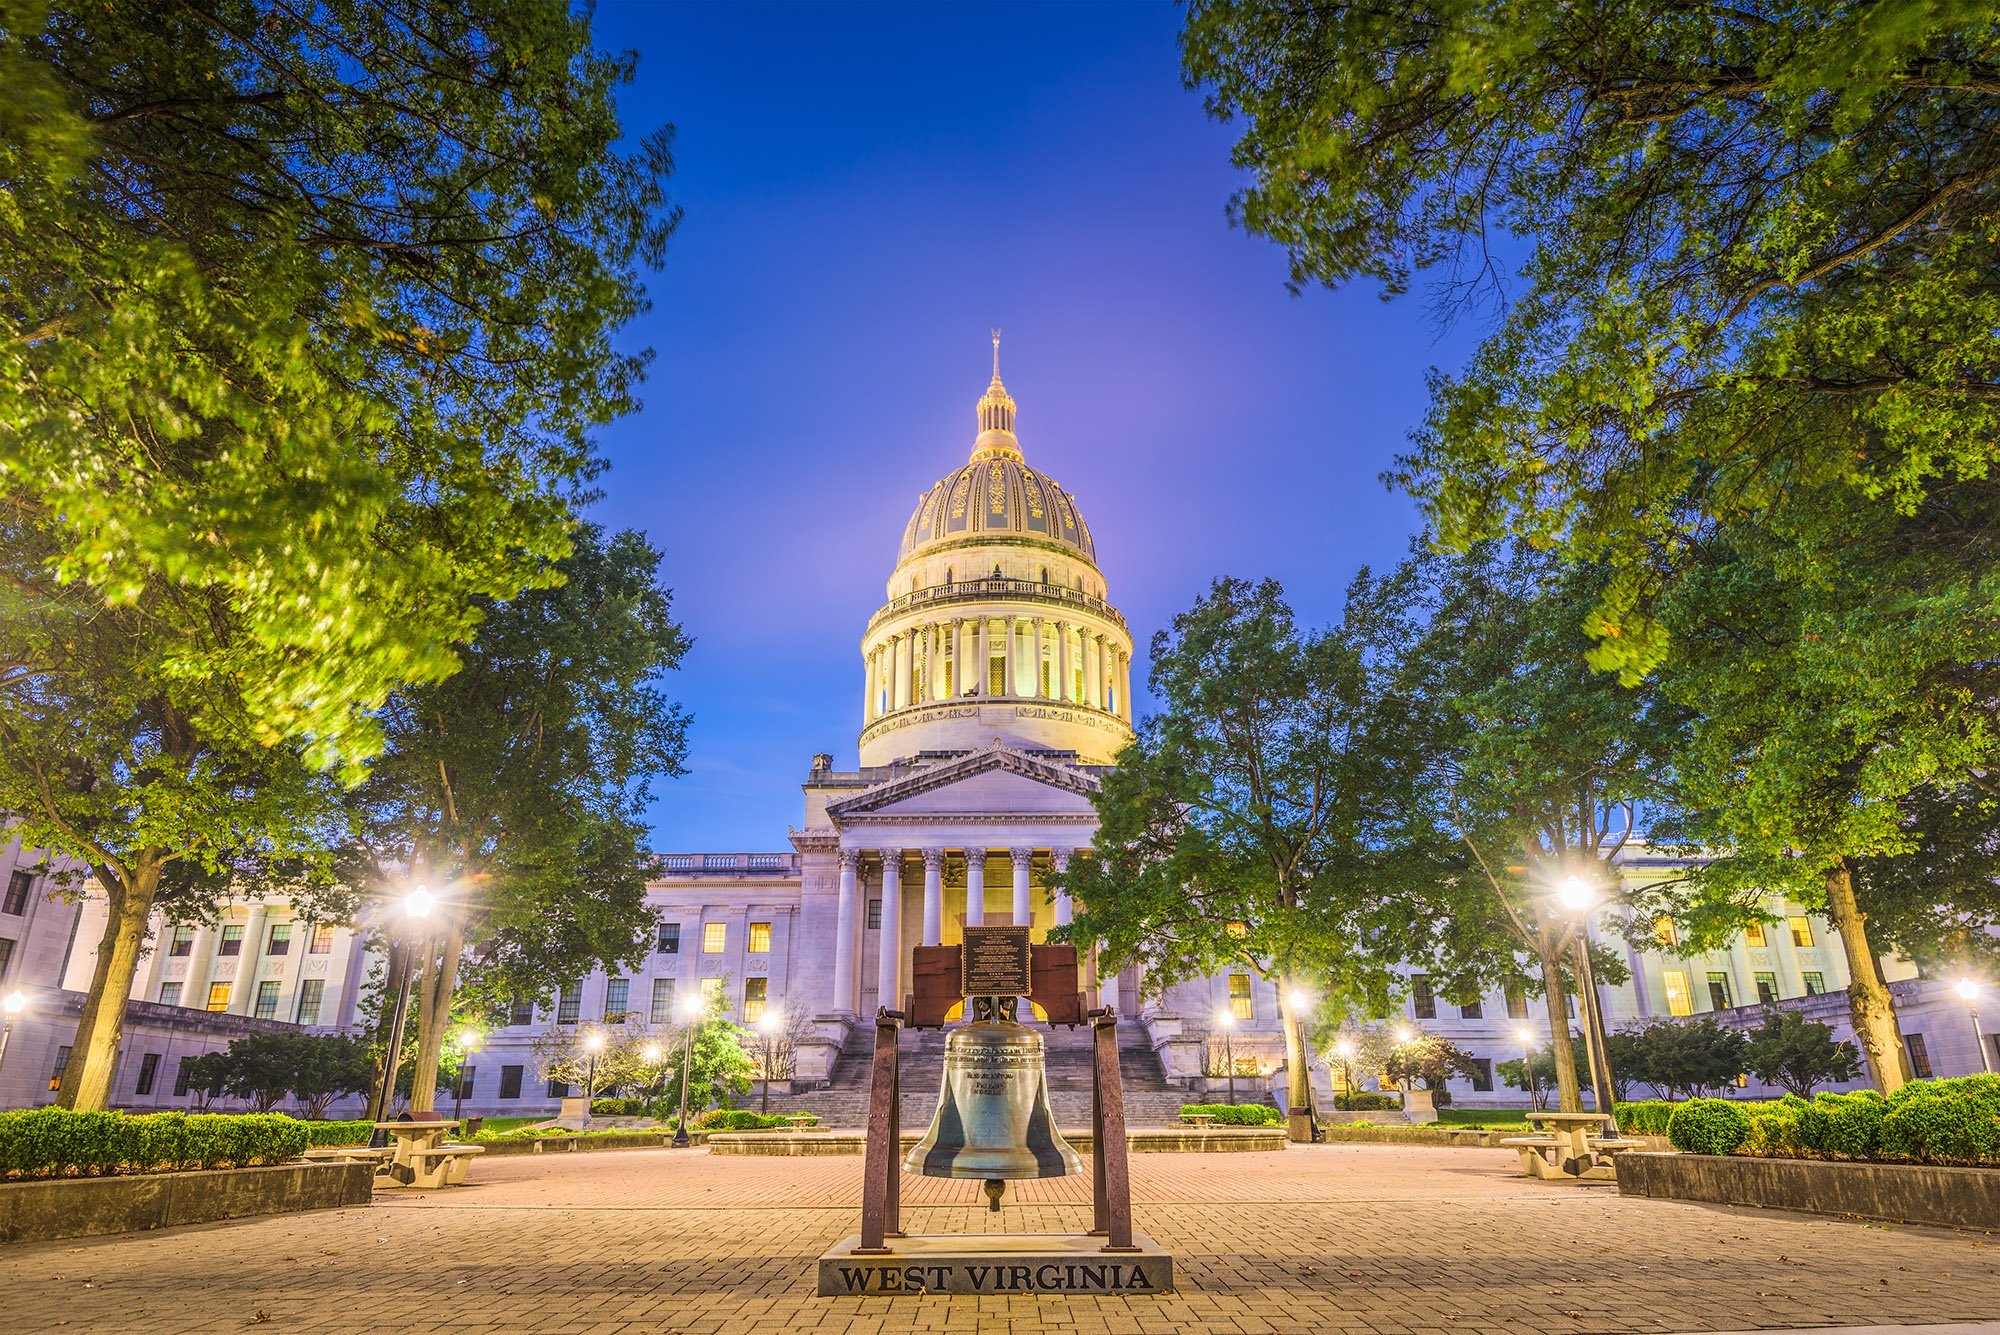 West Virginia Sets Date for Medical Cannabis Business Applications